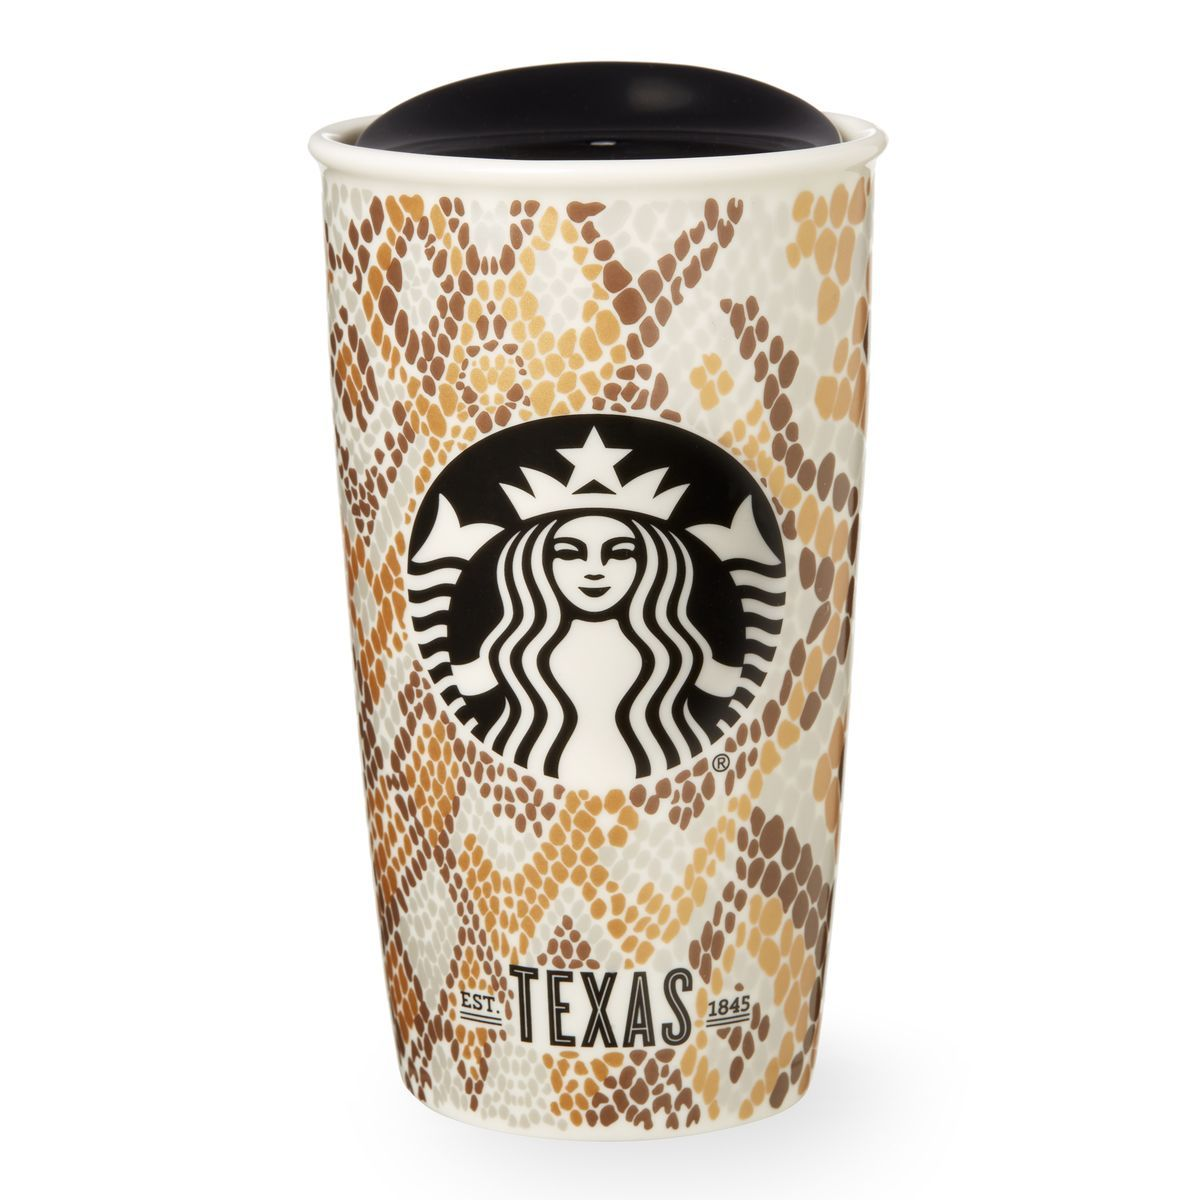 A doublewalled, ceramic travel mug with a rattlesnake